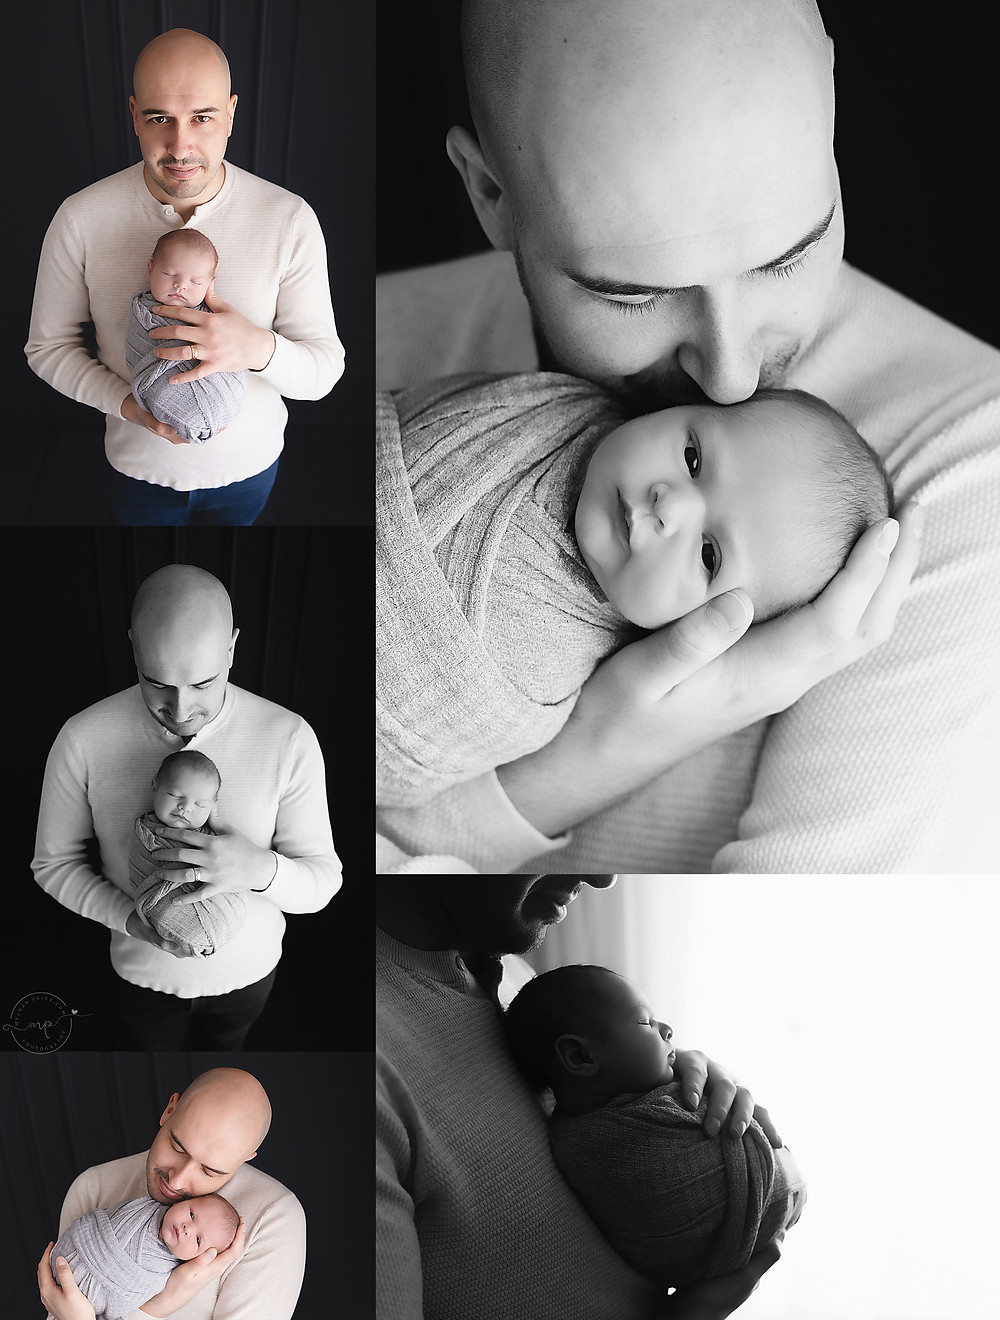 Black and White Newborn/Maternity Photo Session - Meagan Paige Photography - CALGARY AB